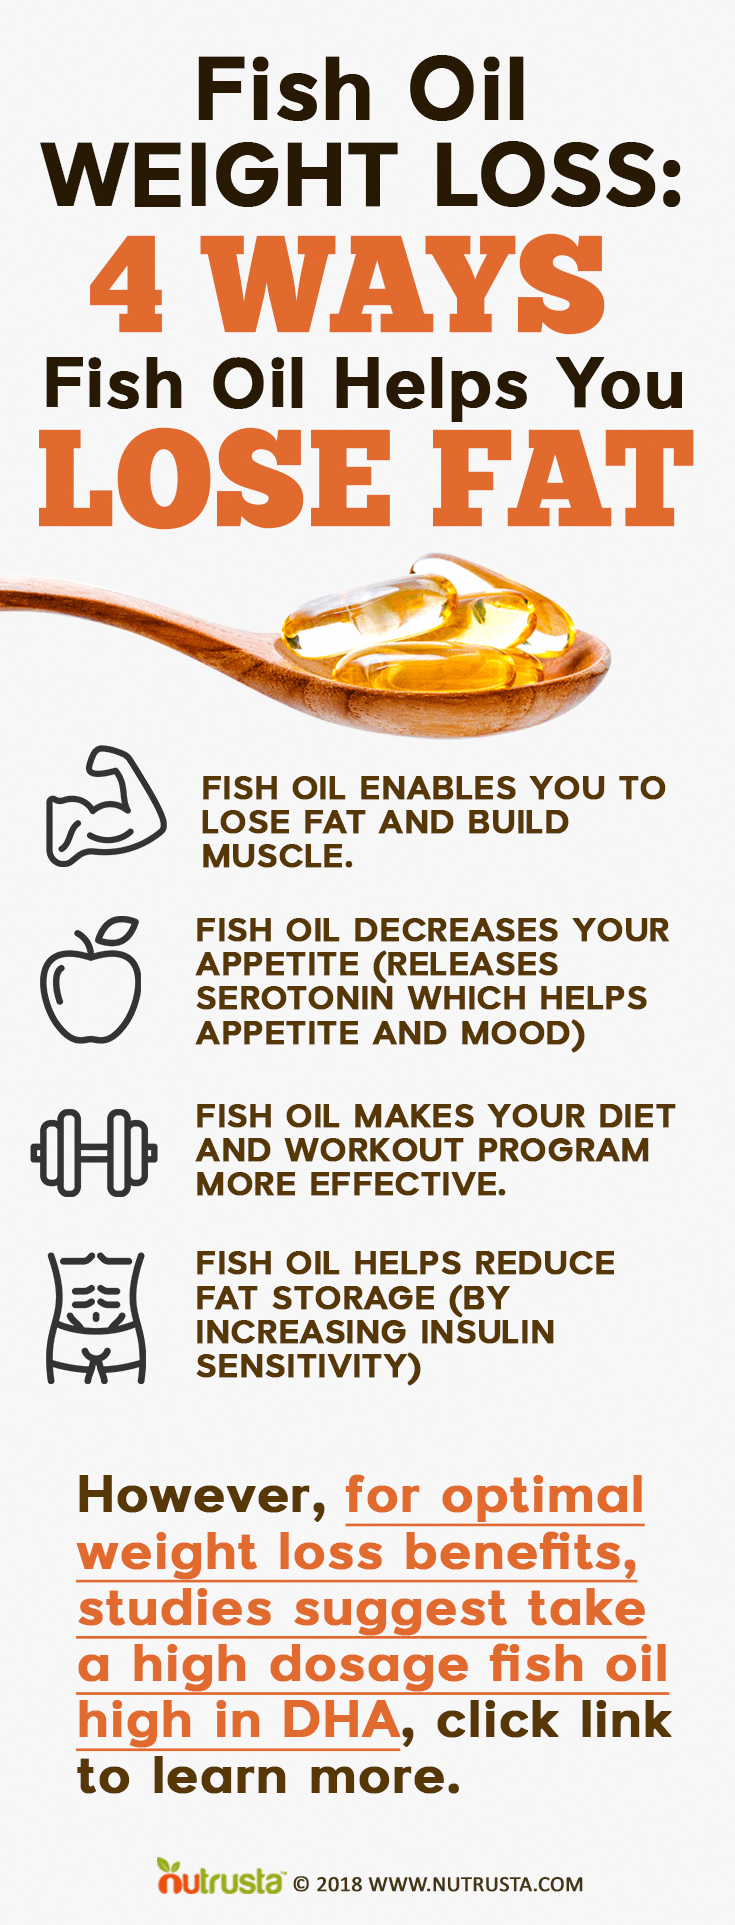 the omega-3 fatty acids in fish oil have various potential health